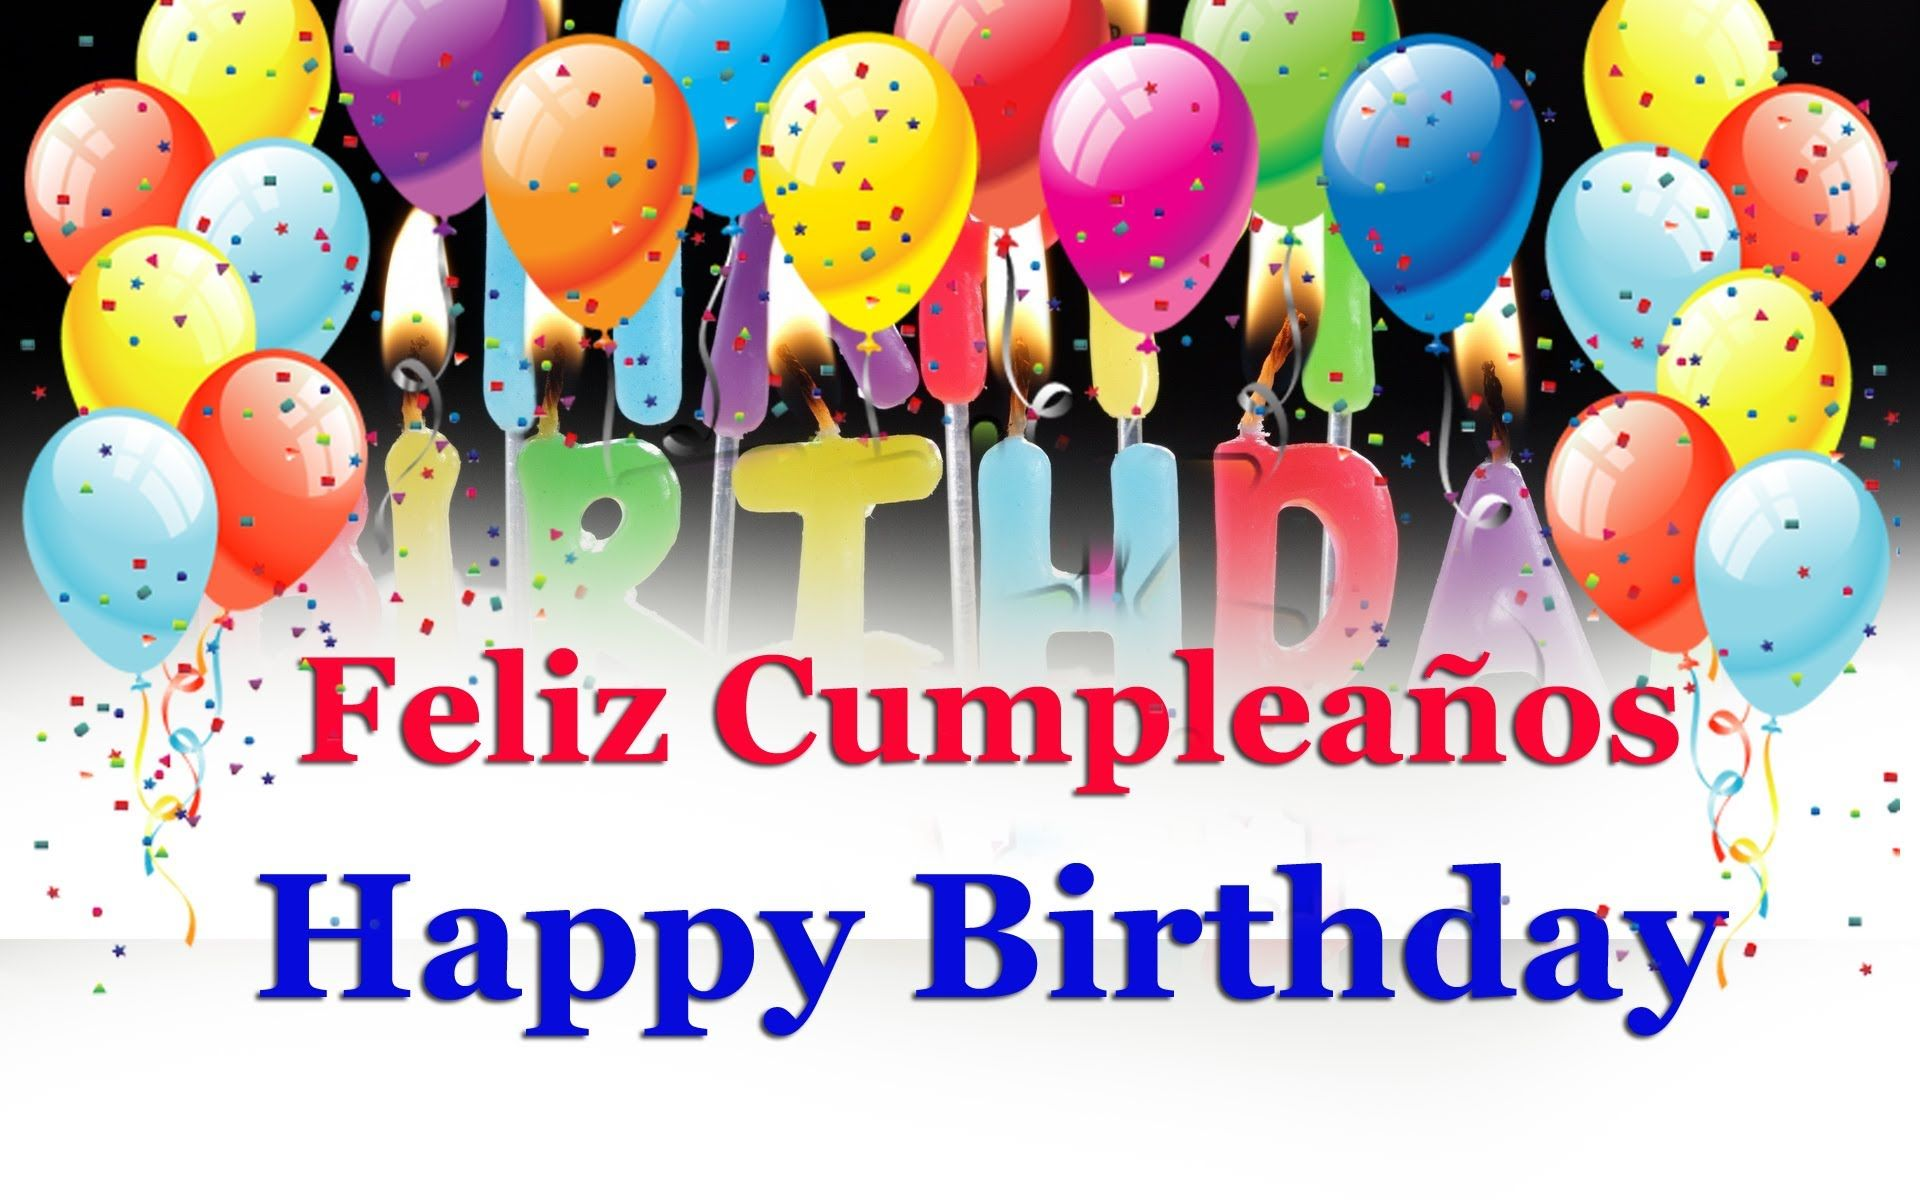 Happy Birthday In Spanish.Happy Birthday Spanish Happy Birthday Spanish Greeting